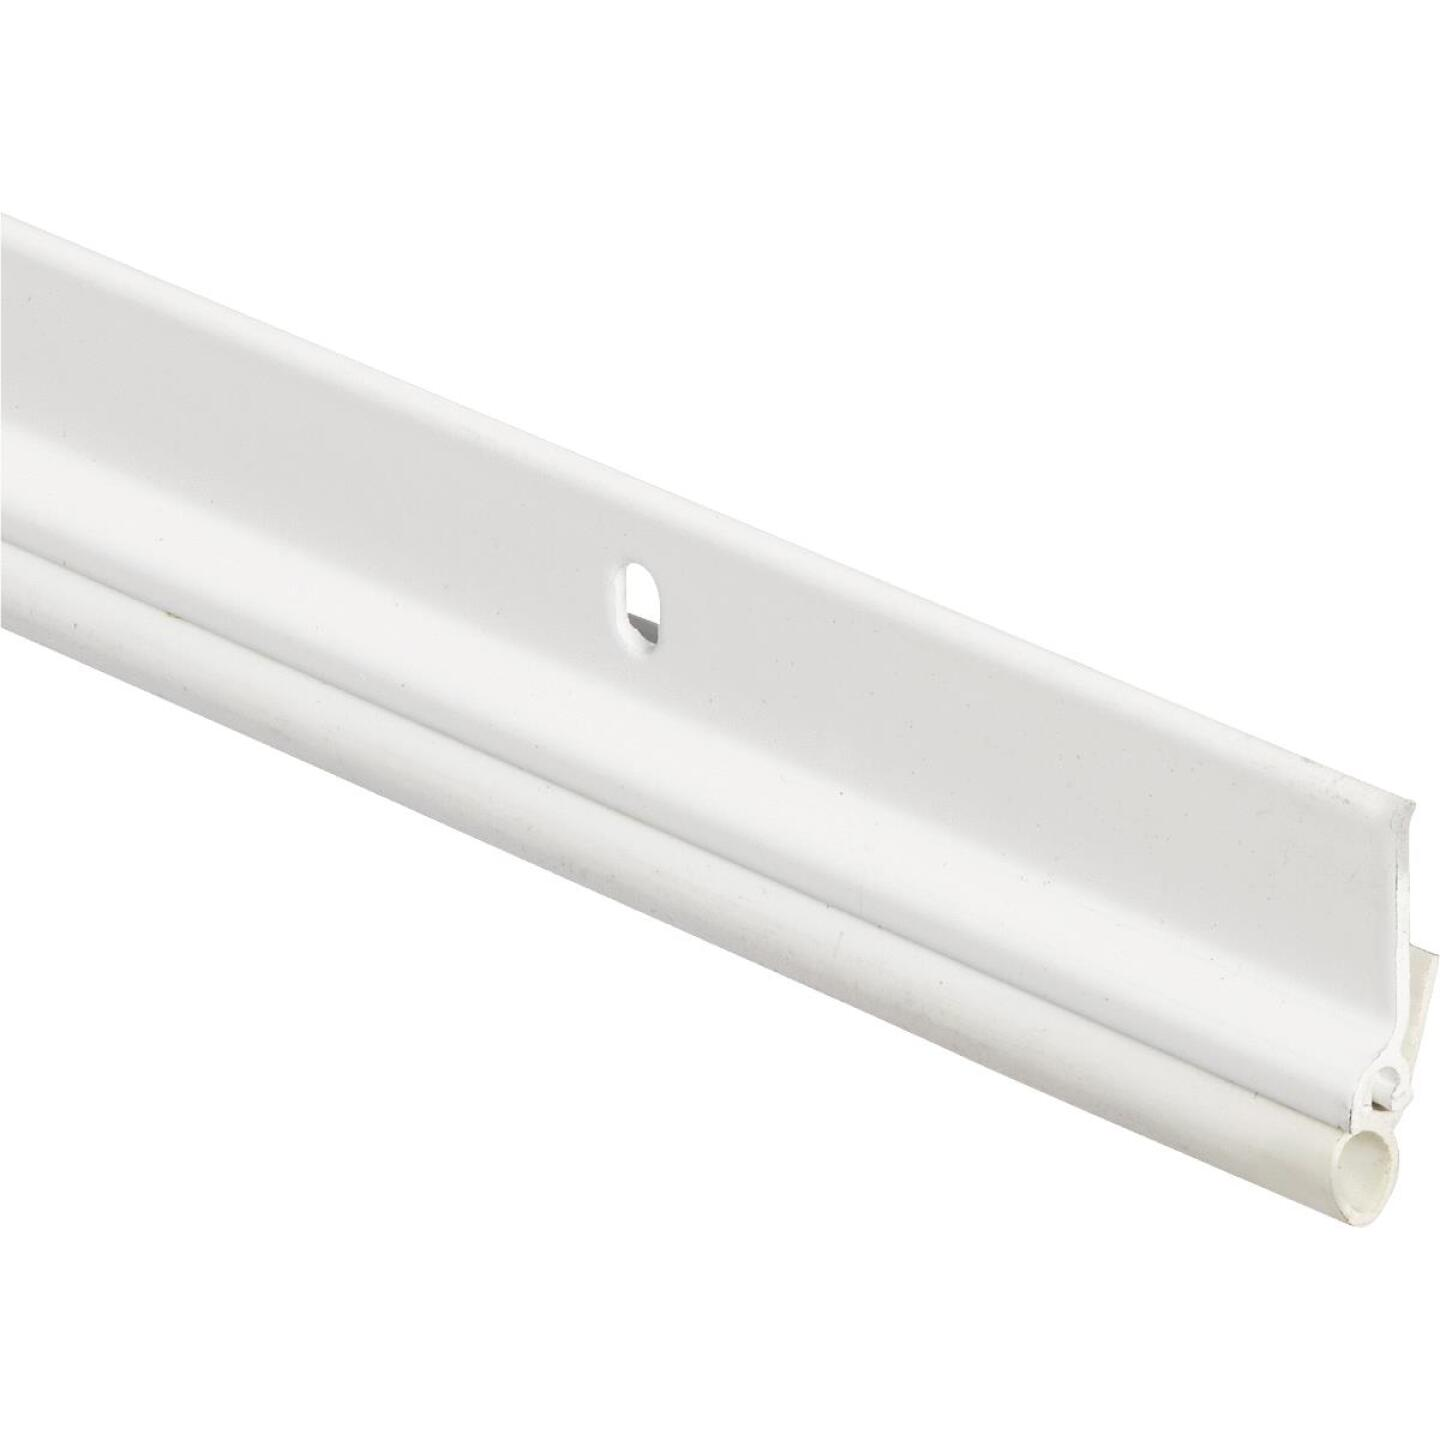 M-D Ultra White 36 In. x 7 Ft. Door Jamb Weatherstrip Image 1